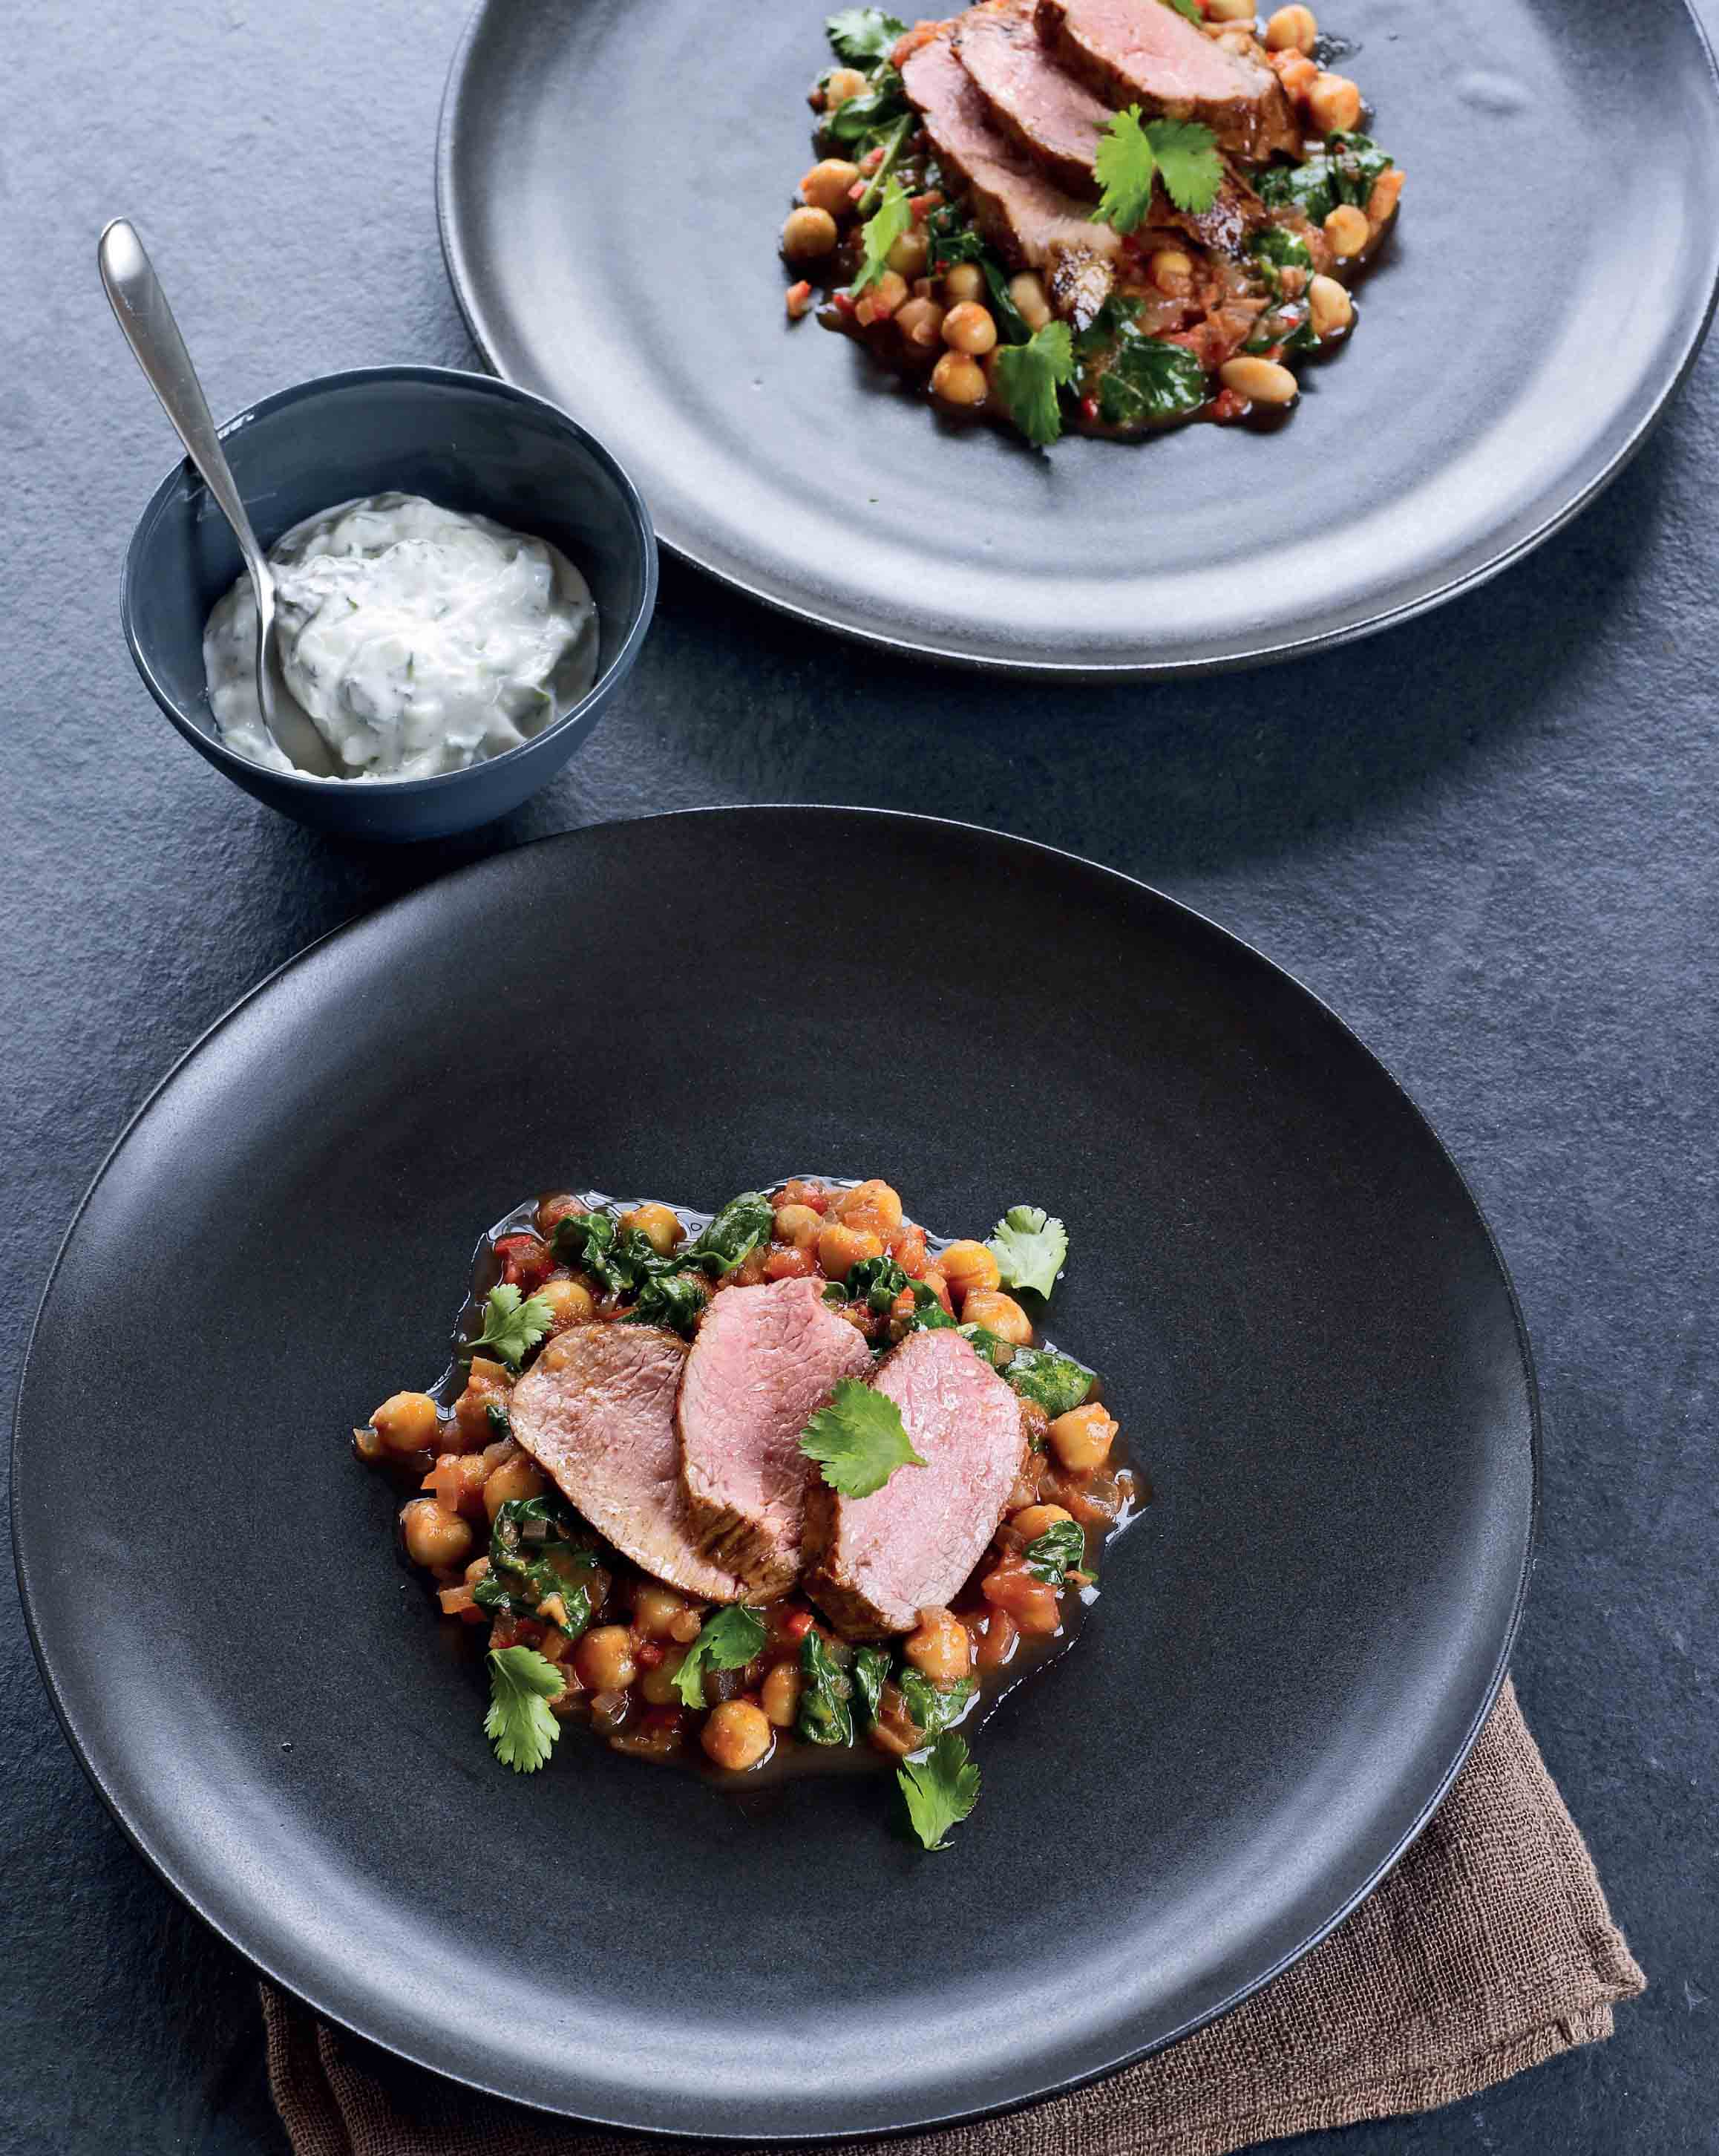 Harissa lamb with spinach and chickpeas